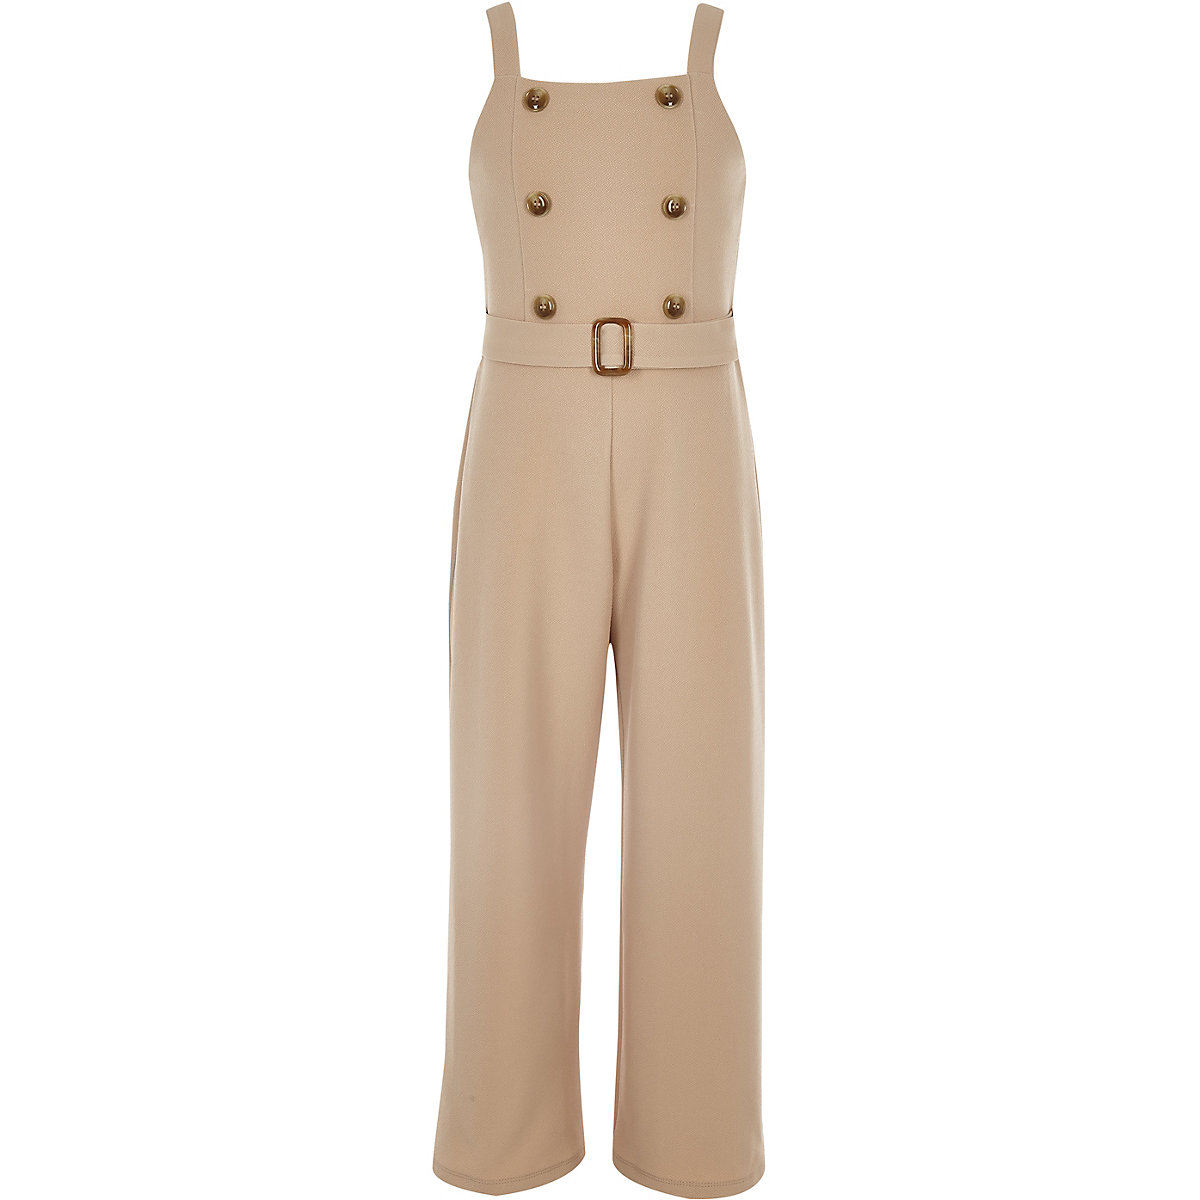 Girls camel double button belted jumpsuit